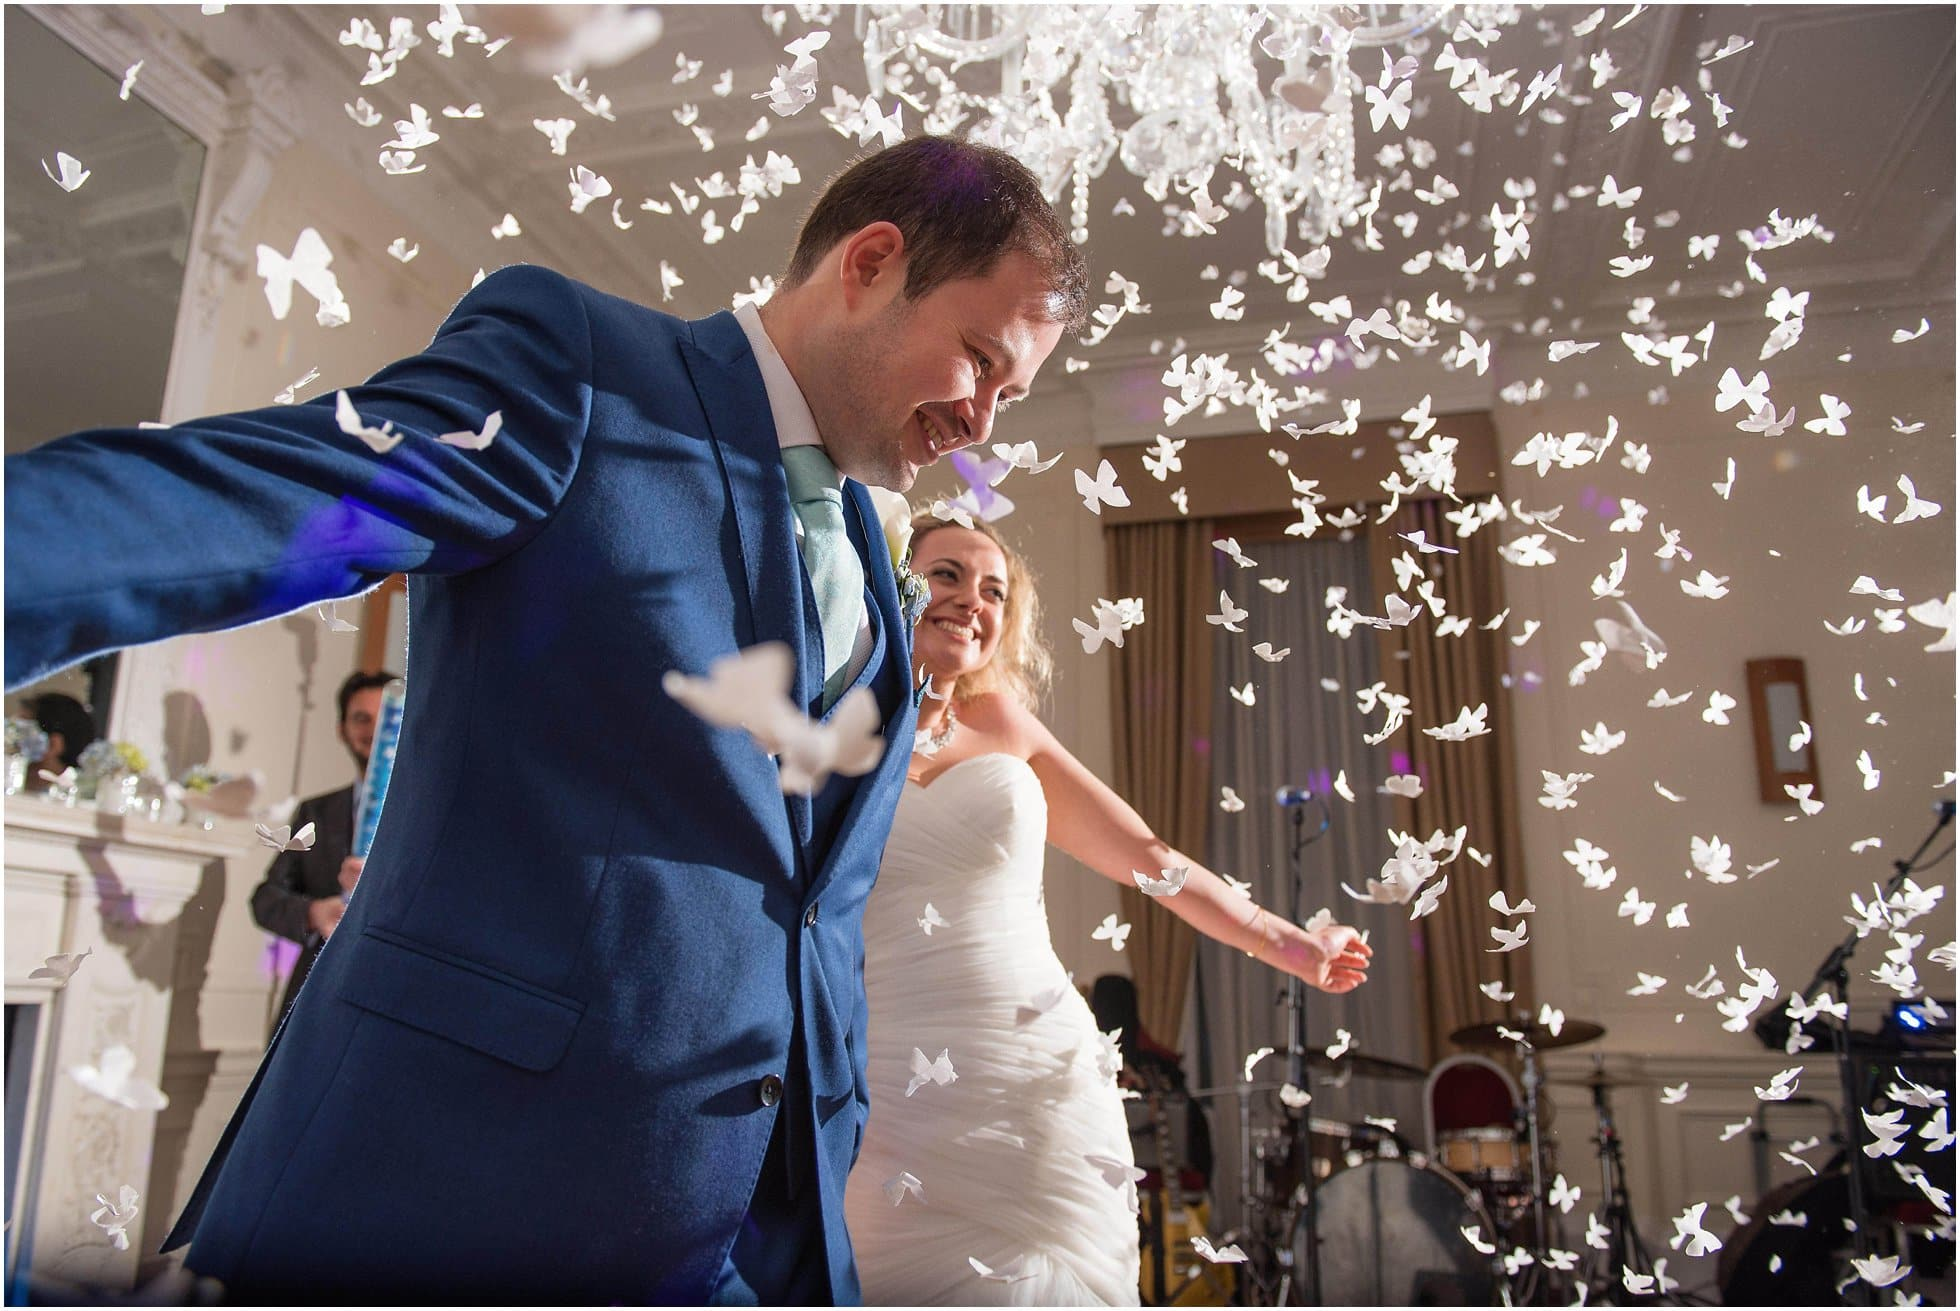 Ponsbourne Park Hotel Wedding Photographer shooting a confetti canon moment during the first dance